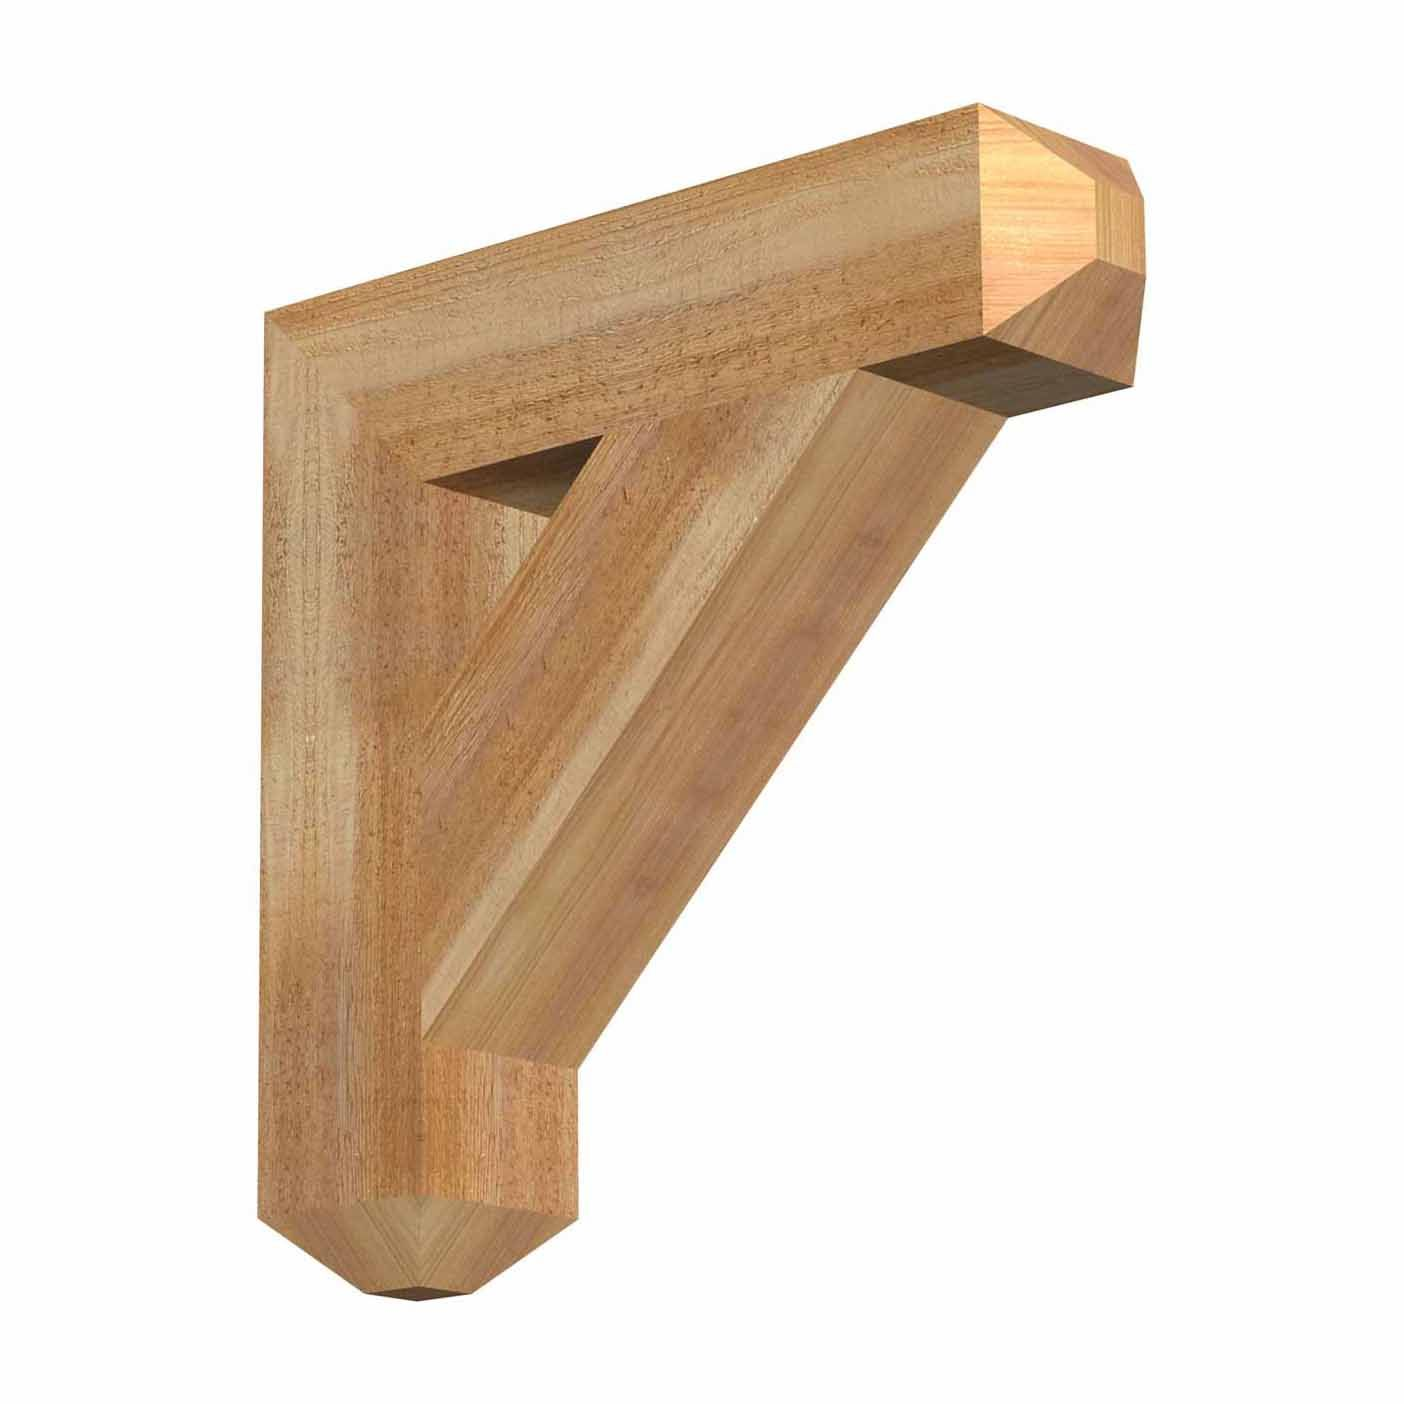 Our Rustic Timber Wood Brackets are made out of solid timber (not ...